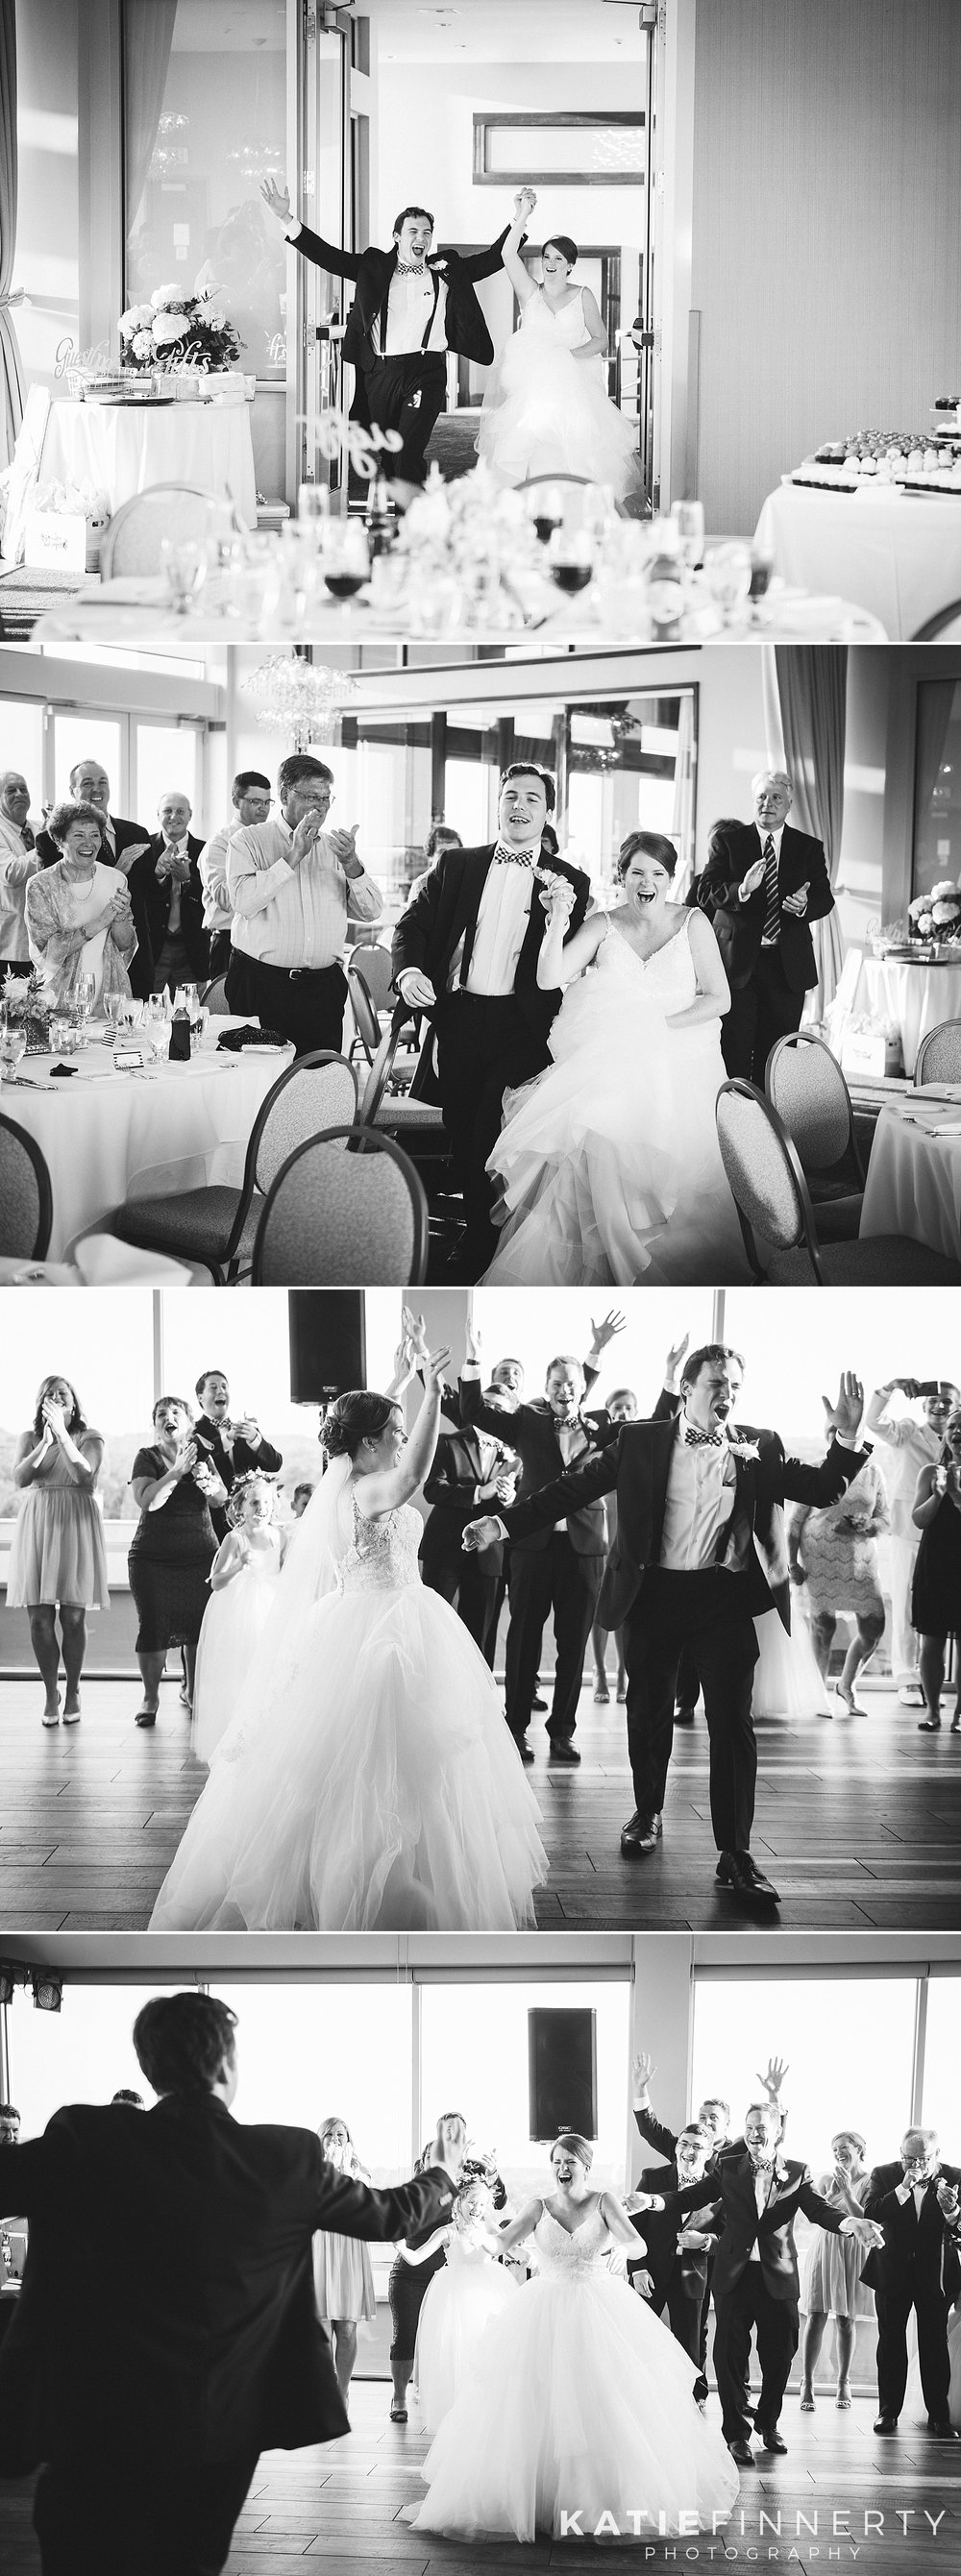 Rochester Strathallan Hotel Wedding Photography